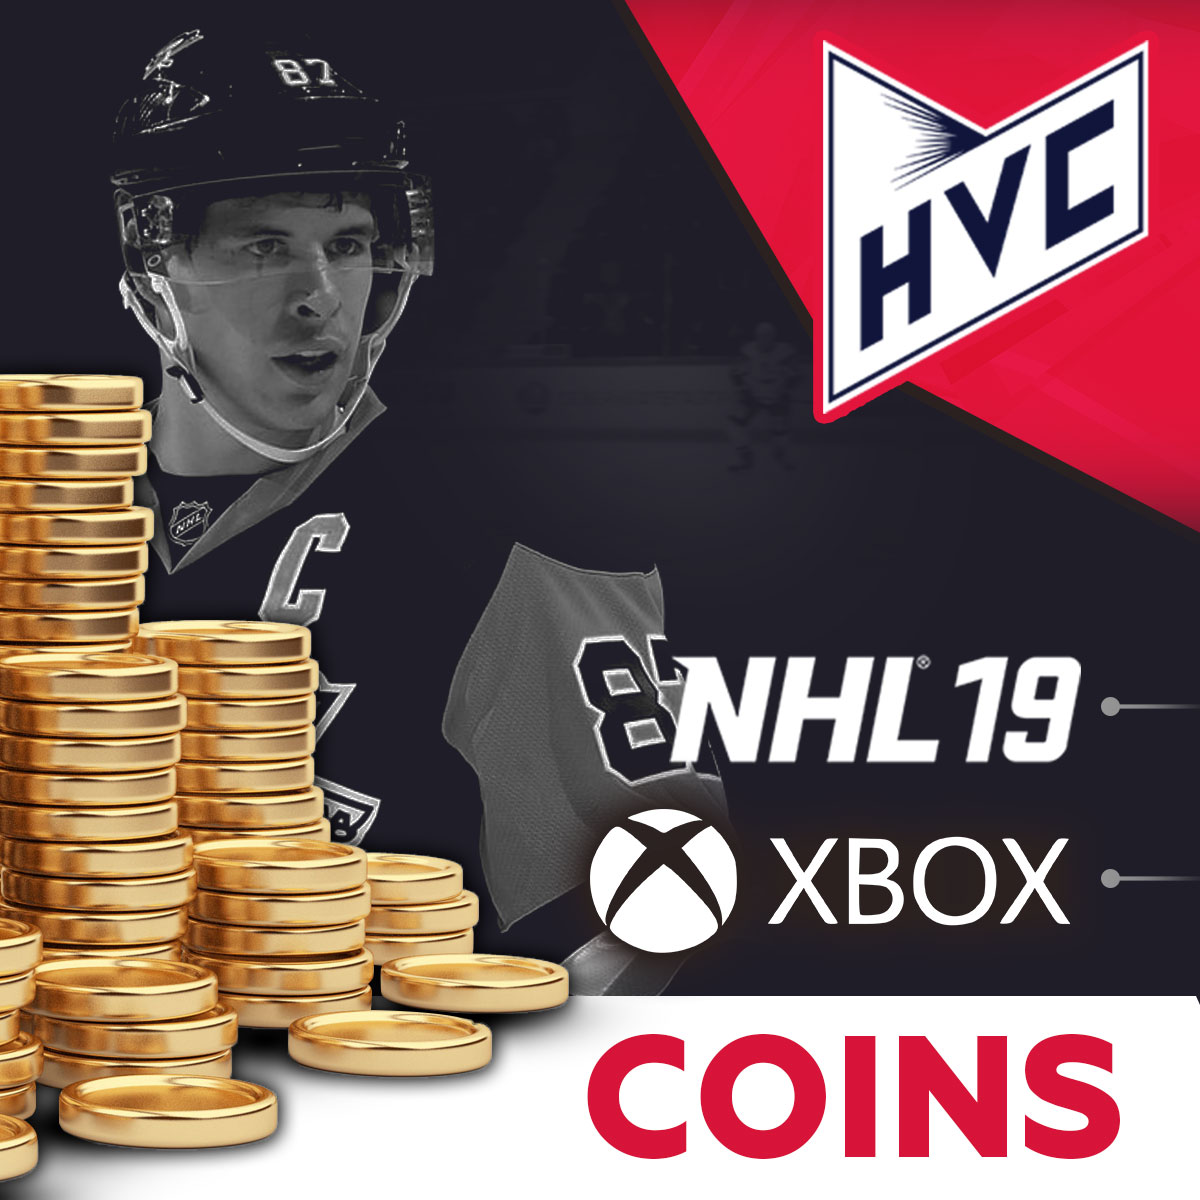 COINS NHL 19 XBOX  HUT Coins | Low Price | Fast | + 5%